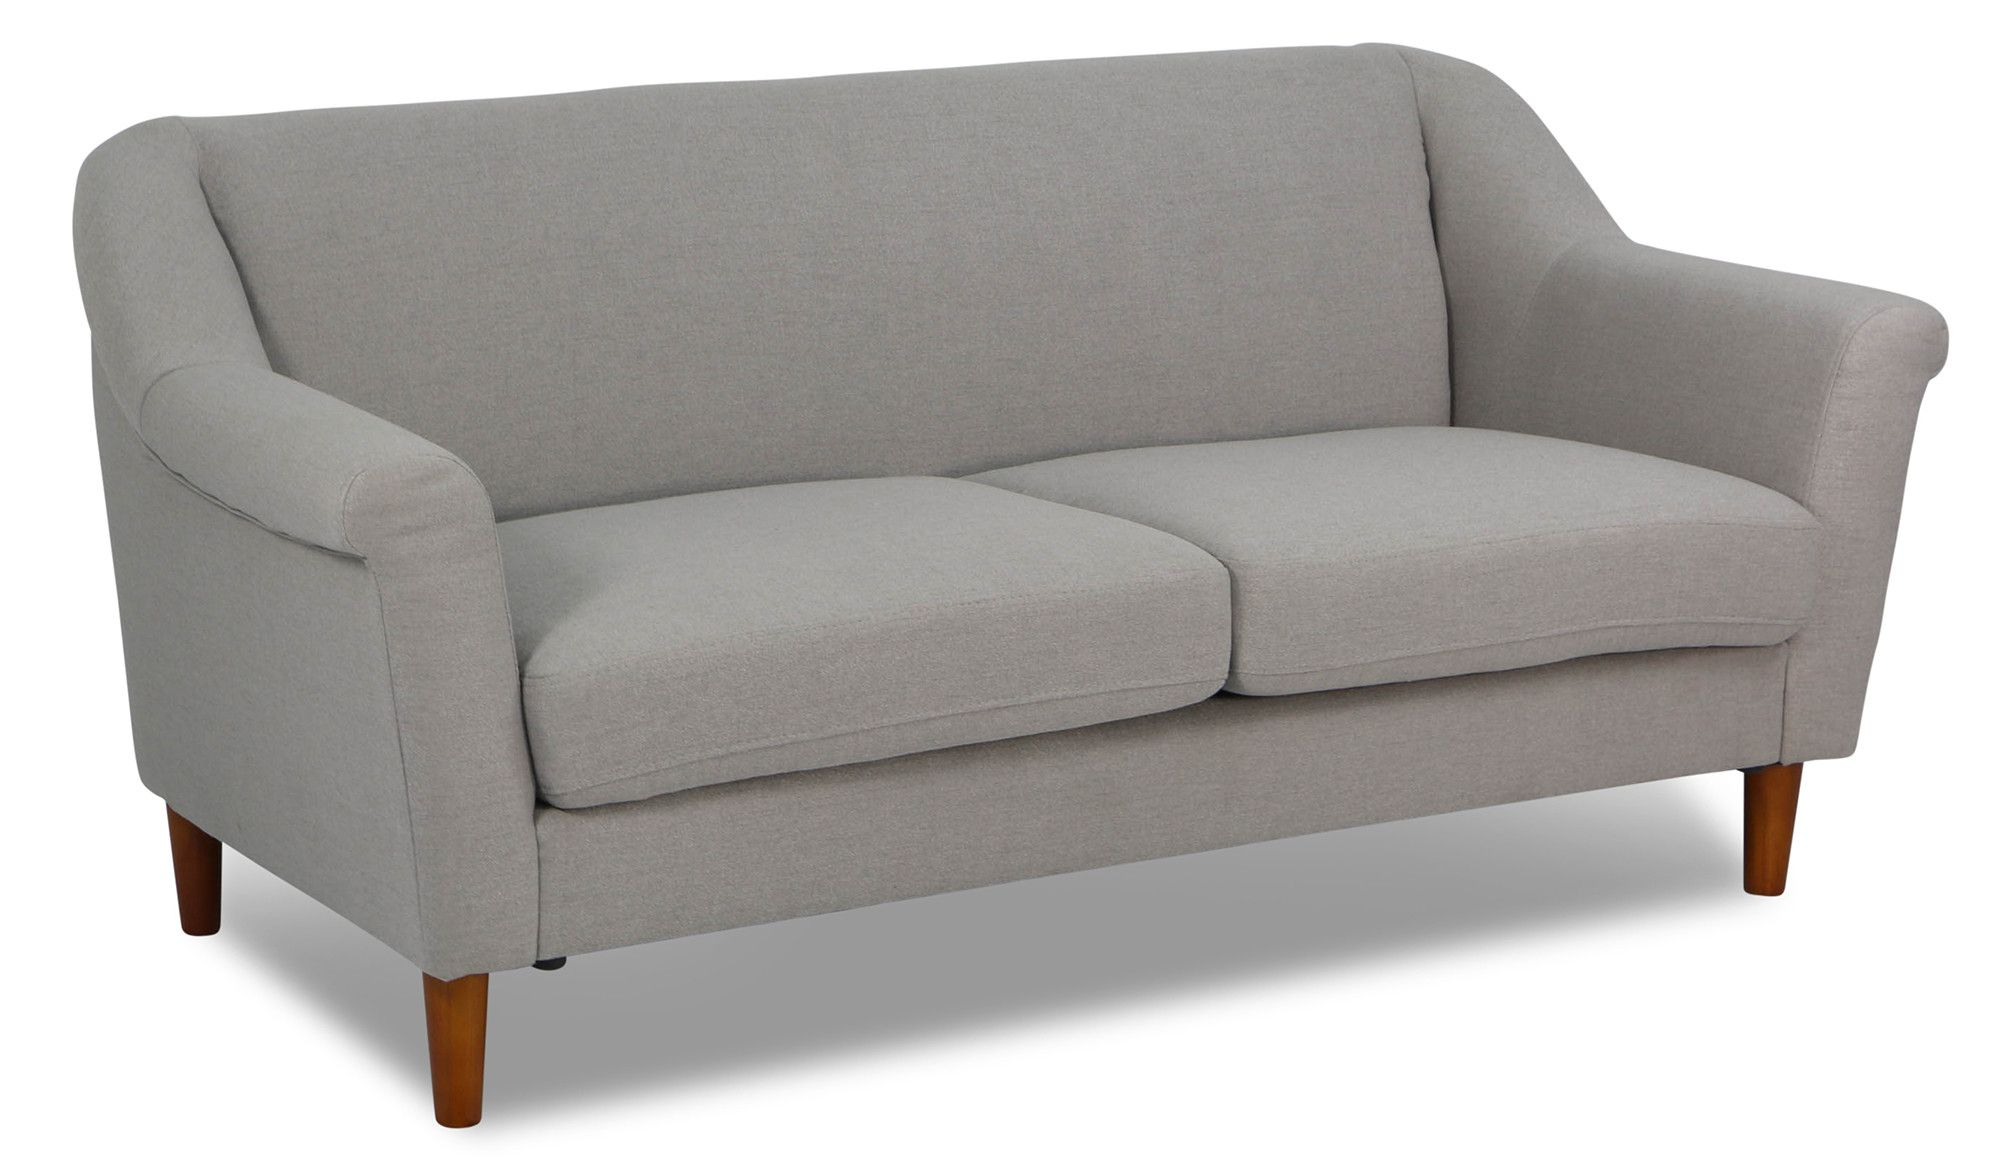 Sofa Table Buy Larsen Fabric Seater Sofa Online on FortyTwo from just now Shop with